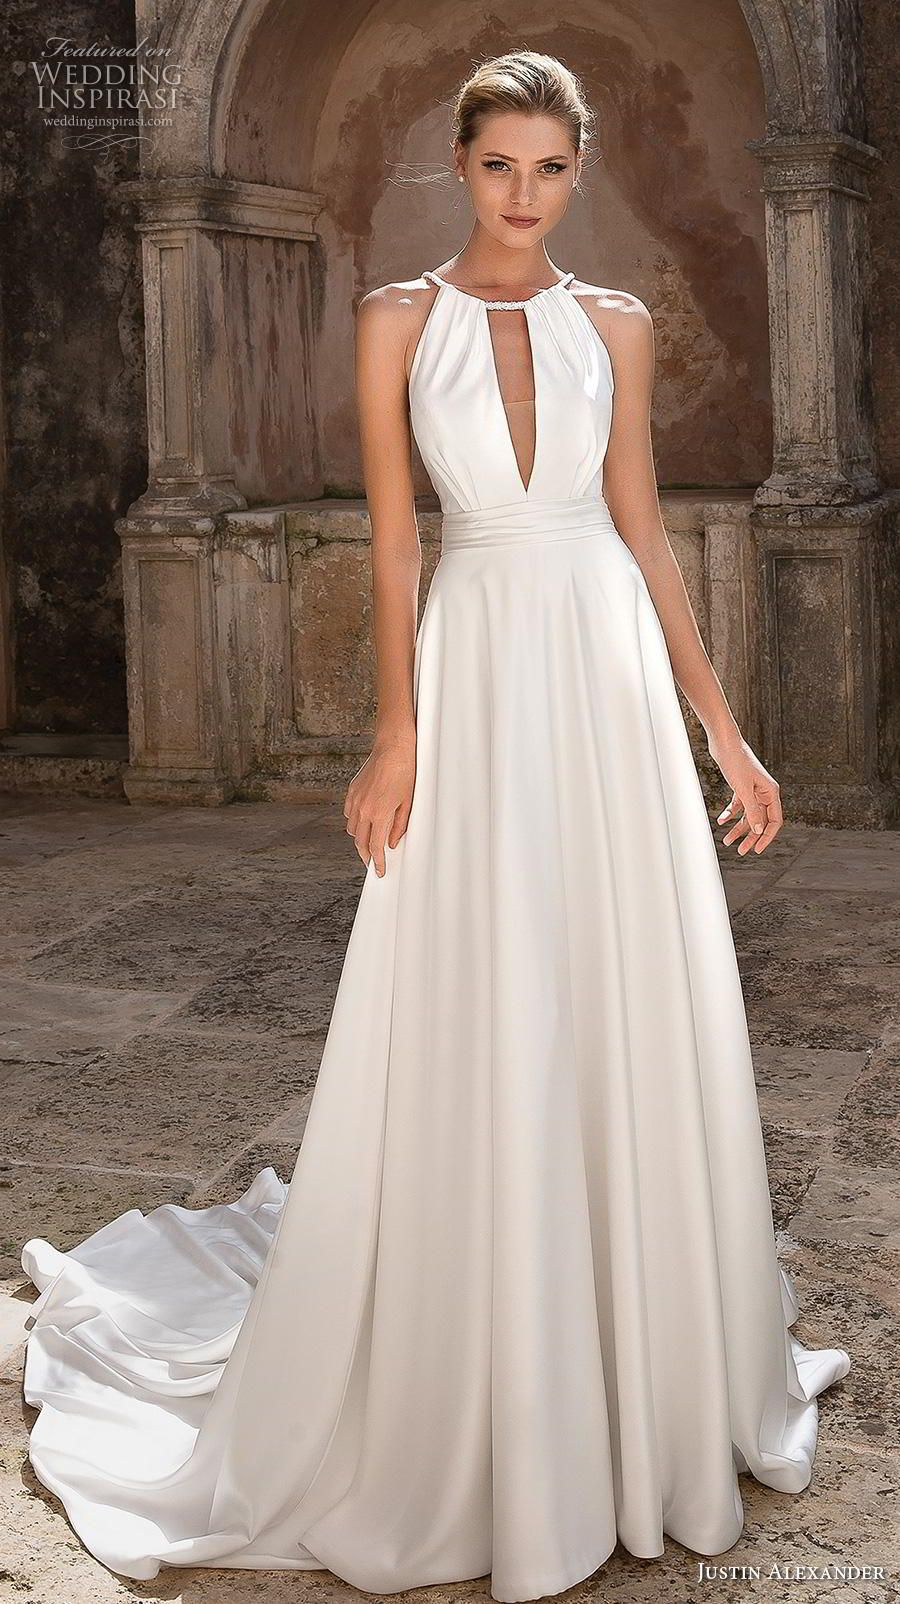 Justin Alexander Spring 2019 Wedding Dresses In 2019